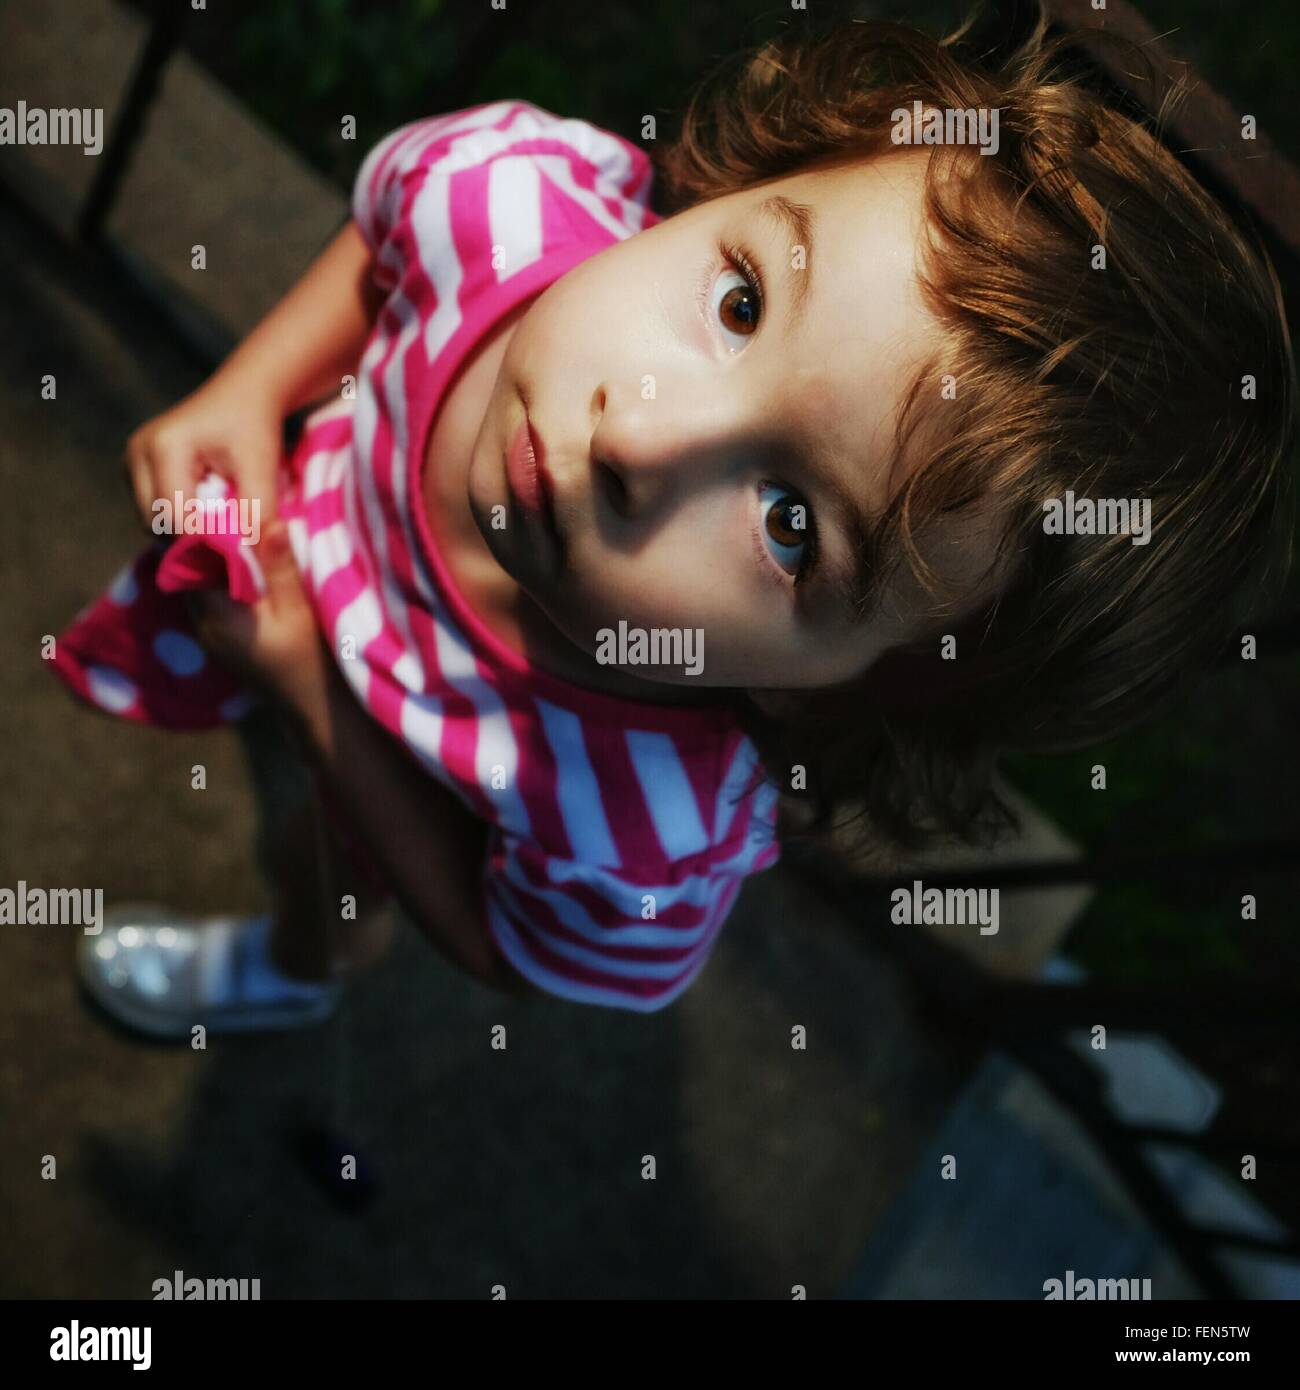 Directly Above View Of Girl Looking Up - Stock Image